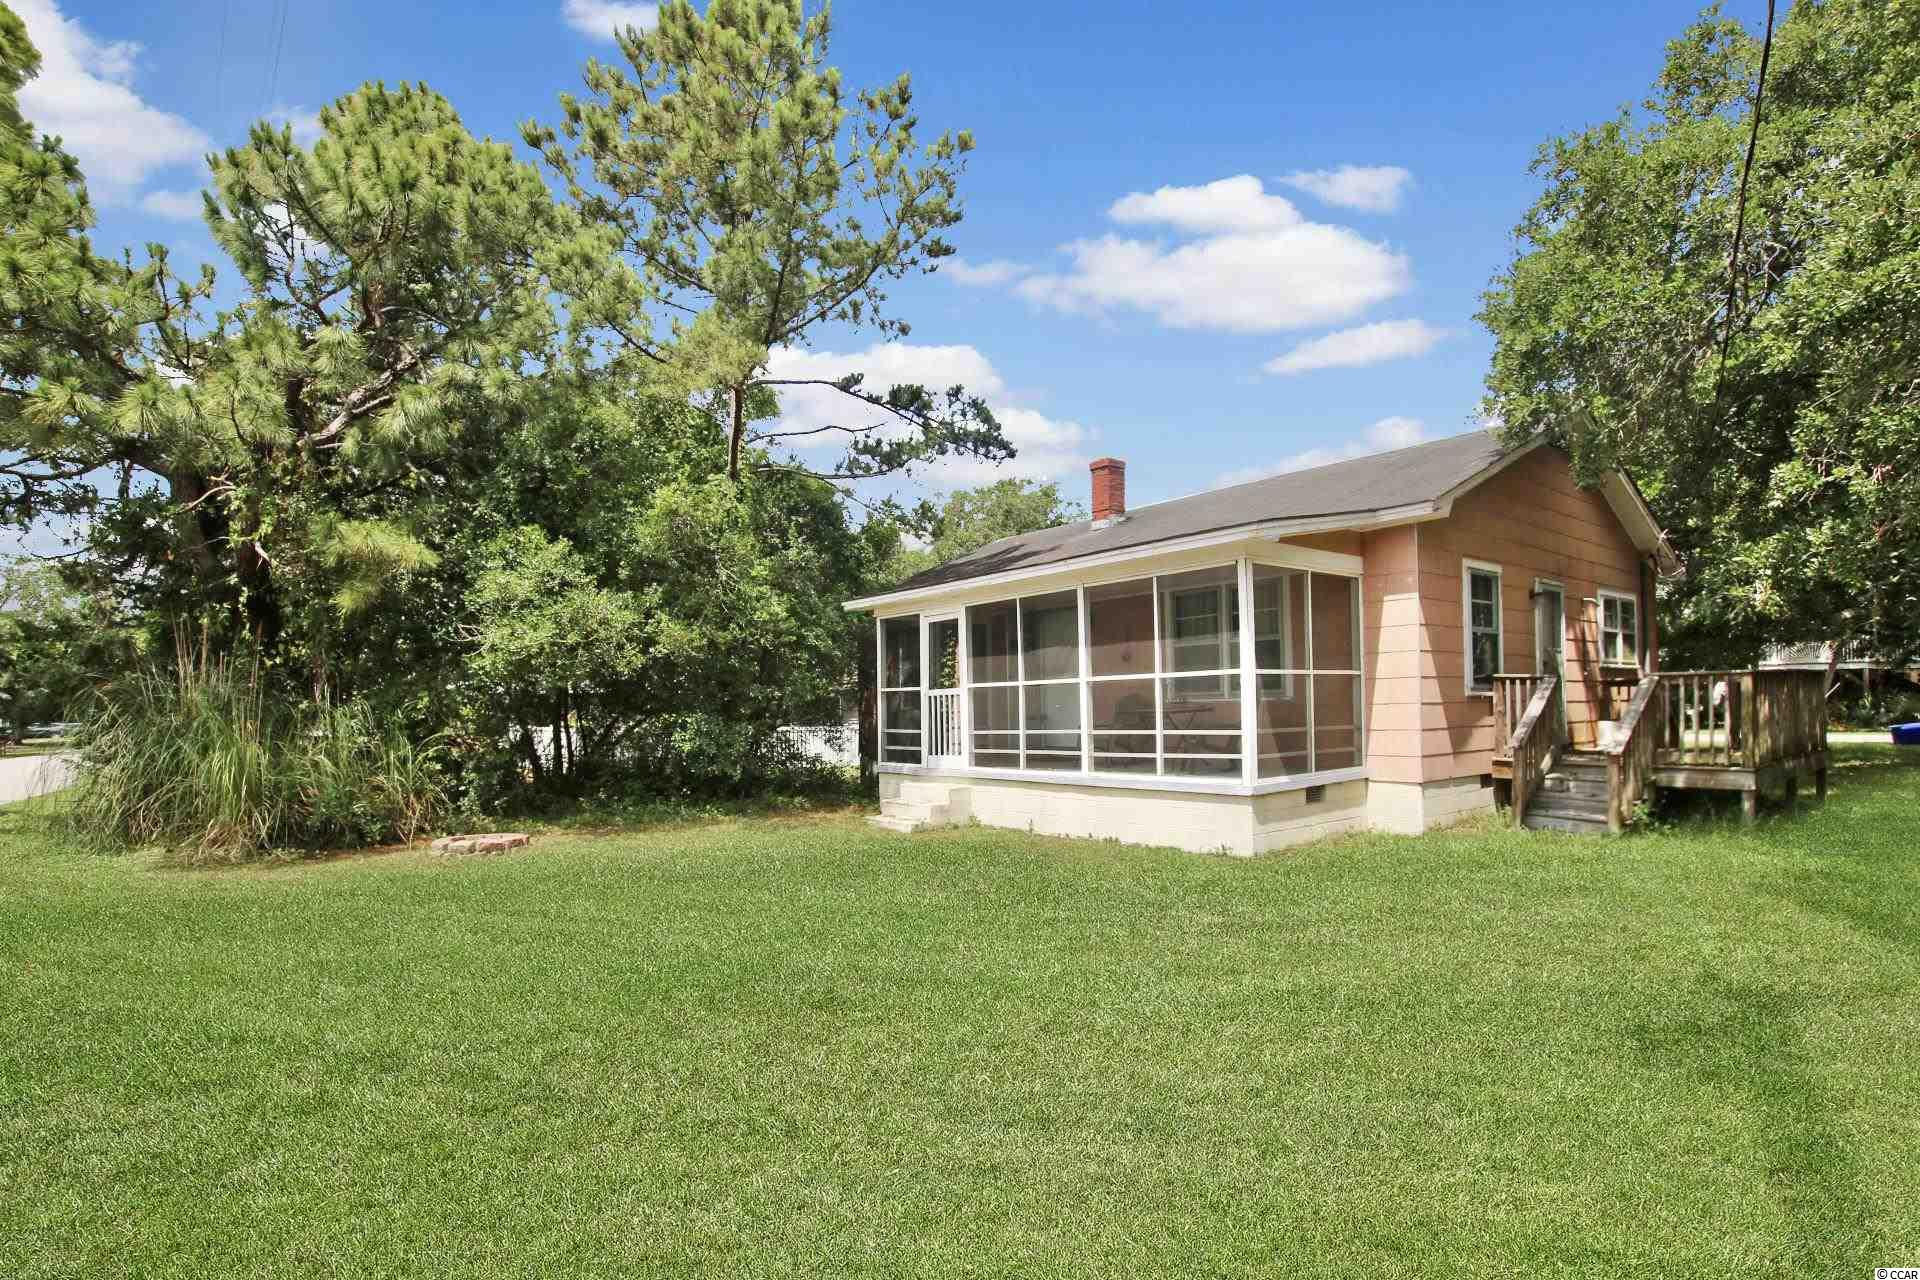 Introducing this enchanting 3 bedroom 1 bath home located just a leisurely stroll down to the white sandy beach. This charming home has an old school beach vibe with knotted pine walls & ceilings, an abundance of natural lighting, an inviting living room, and showcases a welcoming screened-in front porch. The fully equipped kitchen is ready for that low-country cookin' to be shared with your family & friends. Retire to one of the three comfortable bedrooms for an evening of peaceful sleep. This home affords you easy access to the beach and golfing along with all of the other activities and happenings in Myrtle Beach and the new Surfside Beach Entertainment District including fun eateries, award winning off-Broadway shows, public fishing piers, Marsh Walk, and intriguing shopping adventures along the Grand Strand. Conveniently located to your everyday needs, including grocery stores, banks, post offices, medical centers, doctors' offices, and pharmacies. Check out our state of the art 3-D Virtual Tour.